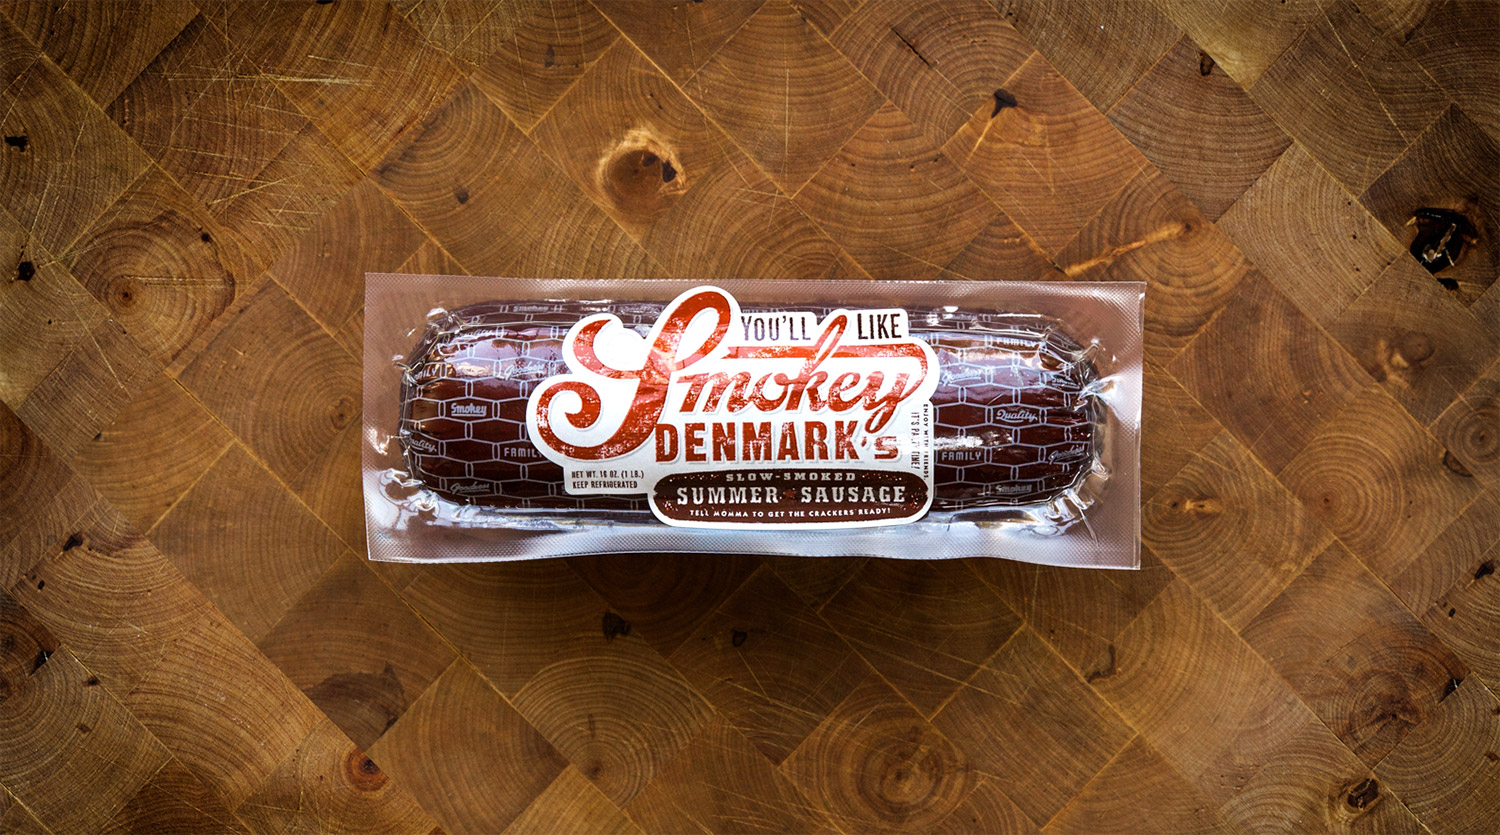 Summer Sausage  Slice it up and eat it with cheese and crackers. No preparation needed.